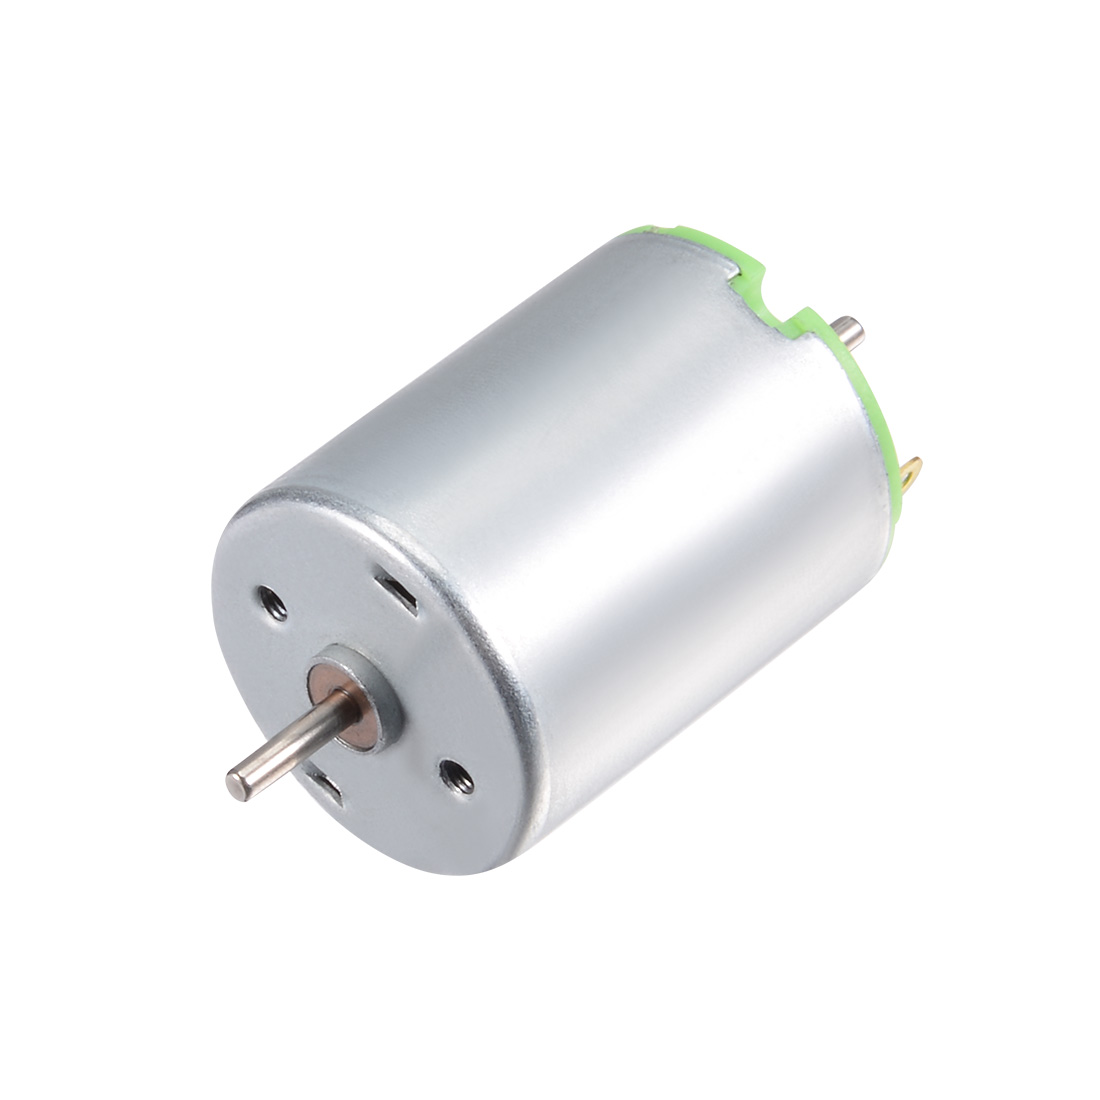 Small Motor DC 6V 6000RPM Dual Axle High Speed Motor for DIY Hobby Toy Cars